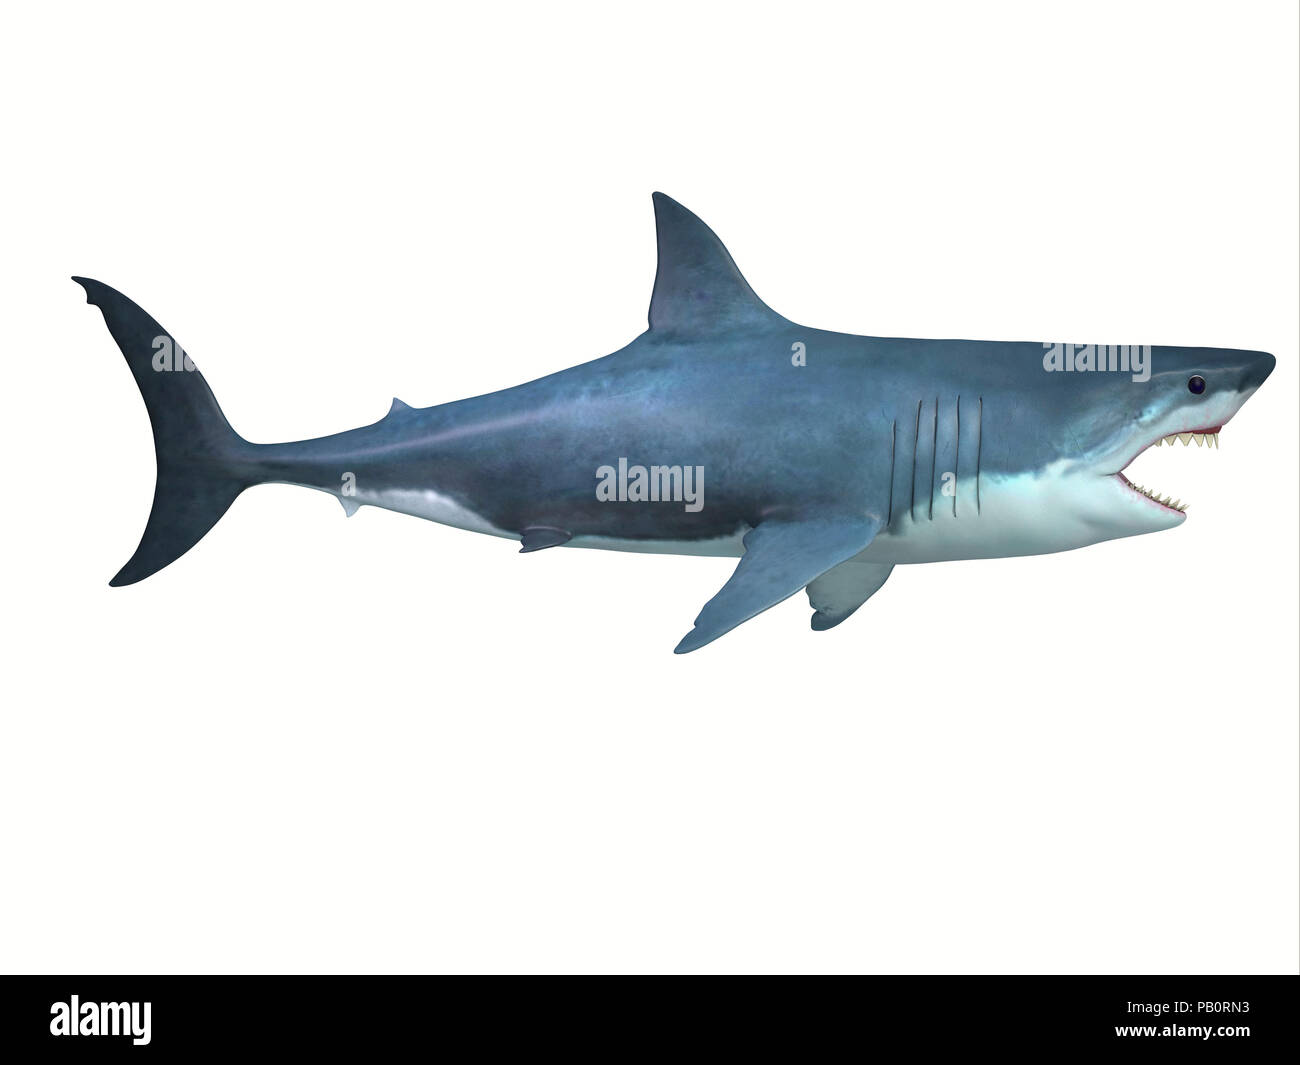 Great White Shark Side Profile - The Great White shark is a large carnivore found in all ocean environments and can live to 70 years old. - Stock Image